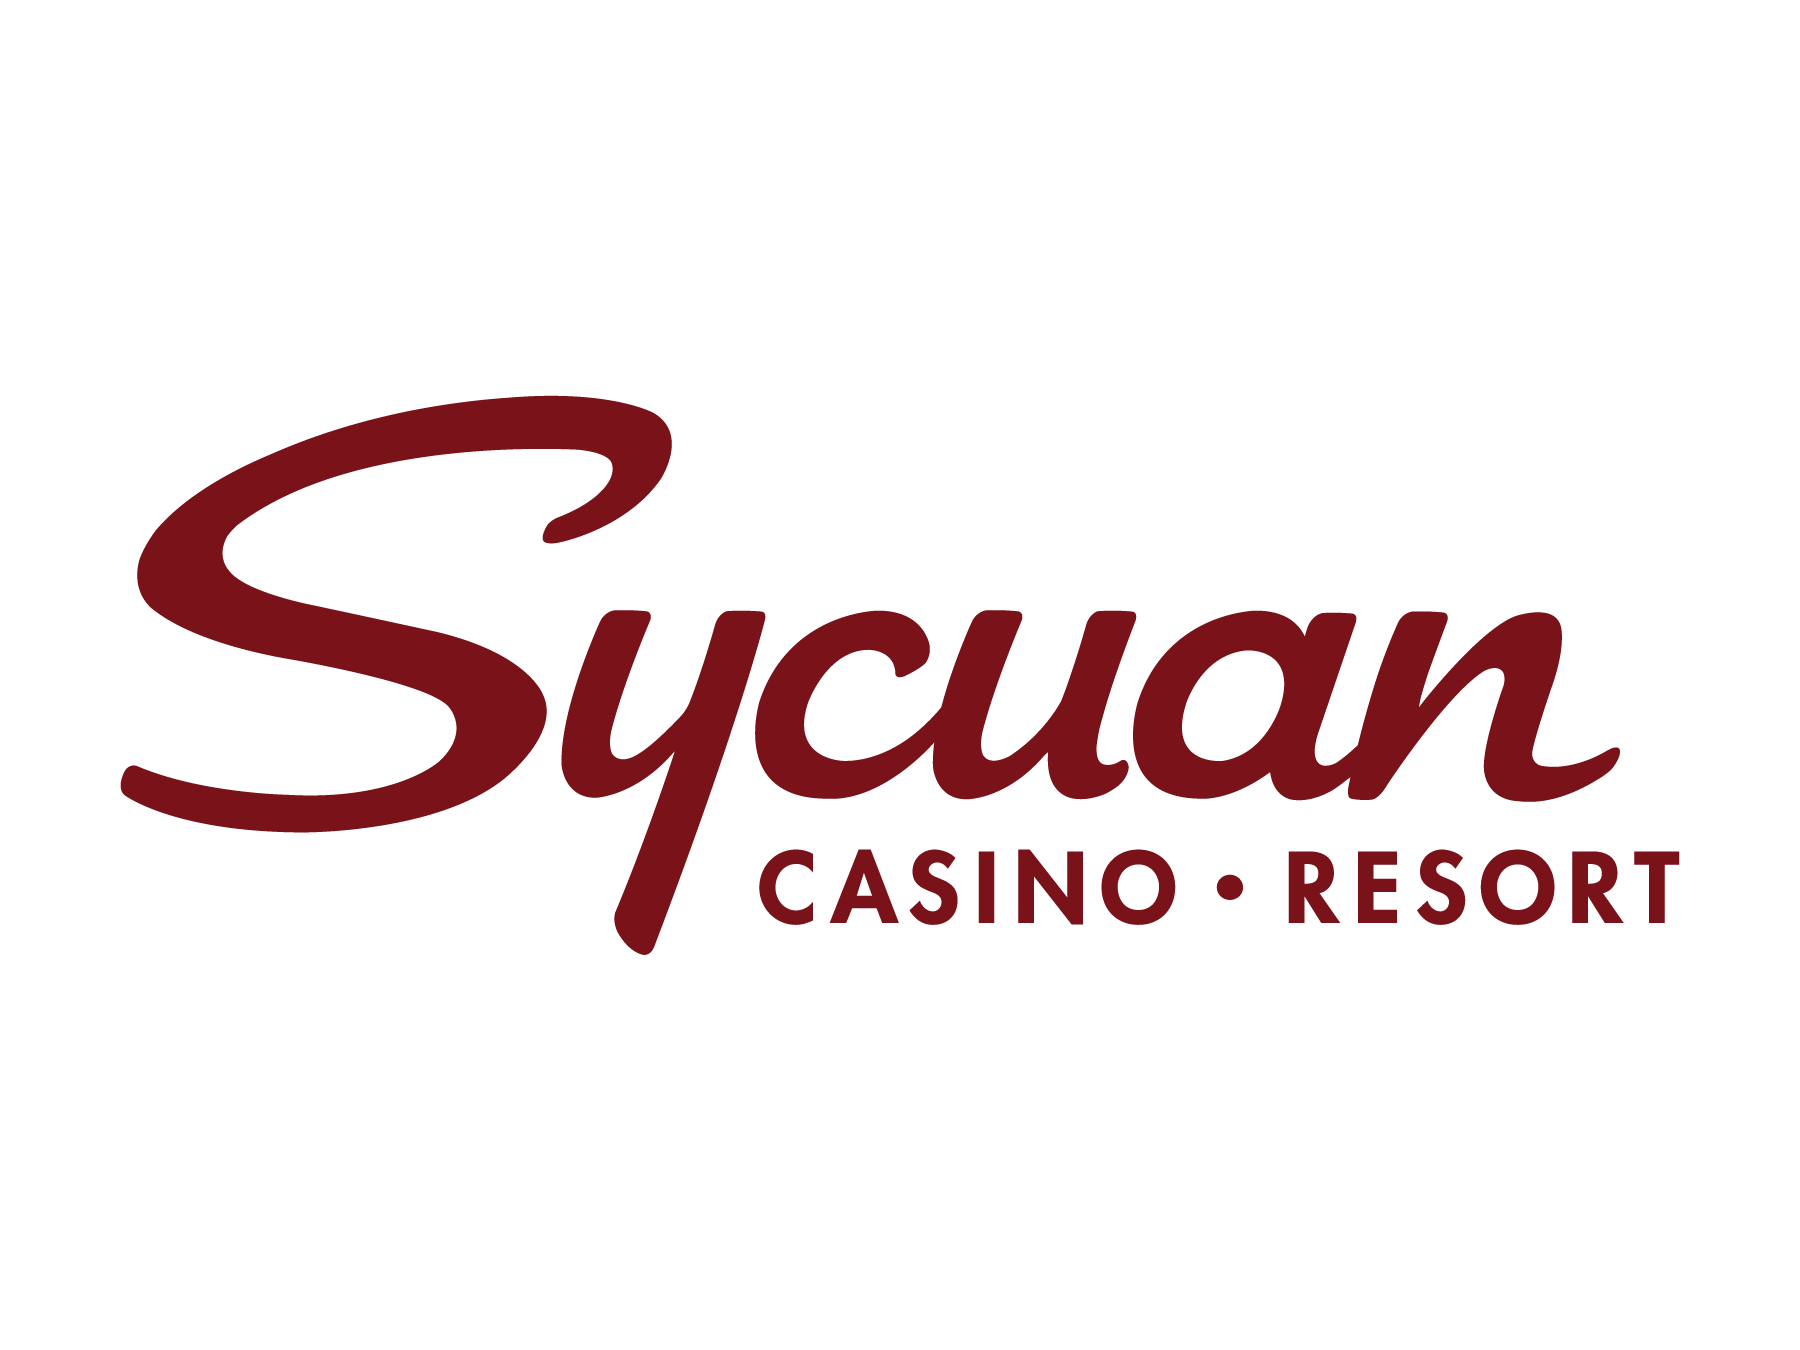 Sycuan Casino • Resort